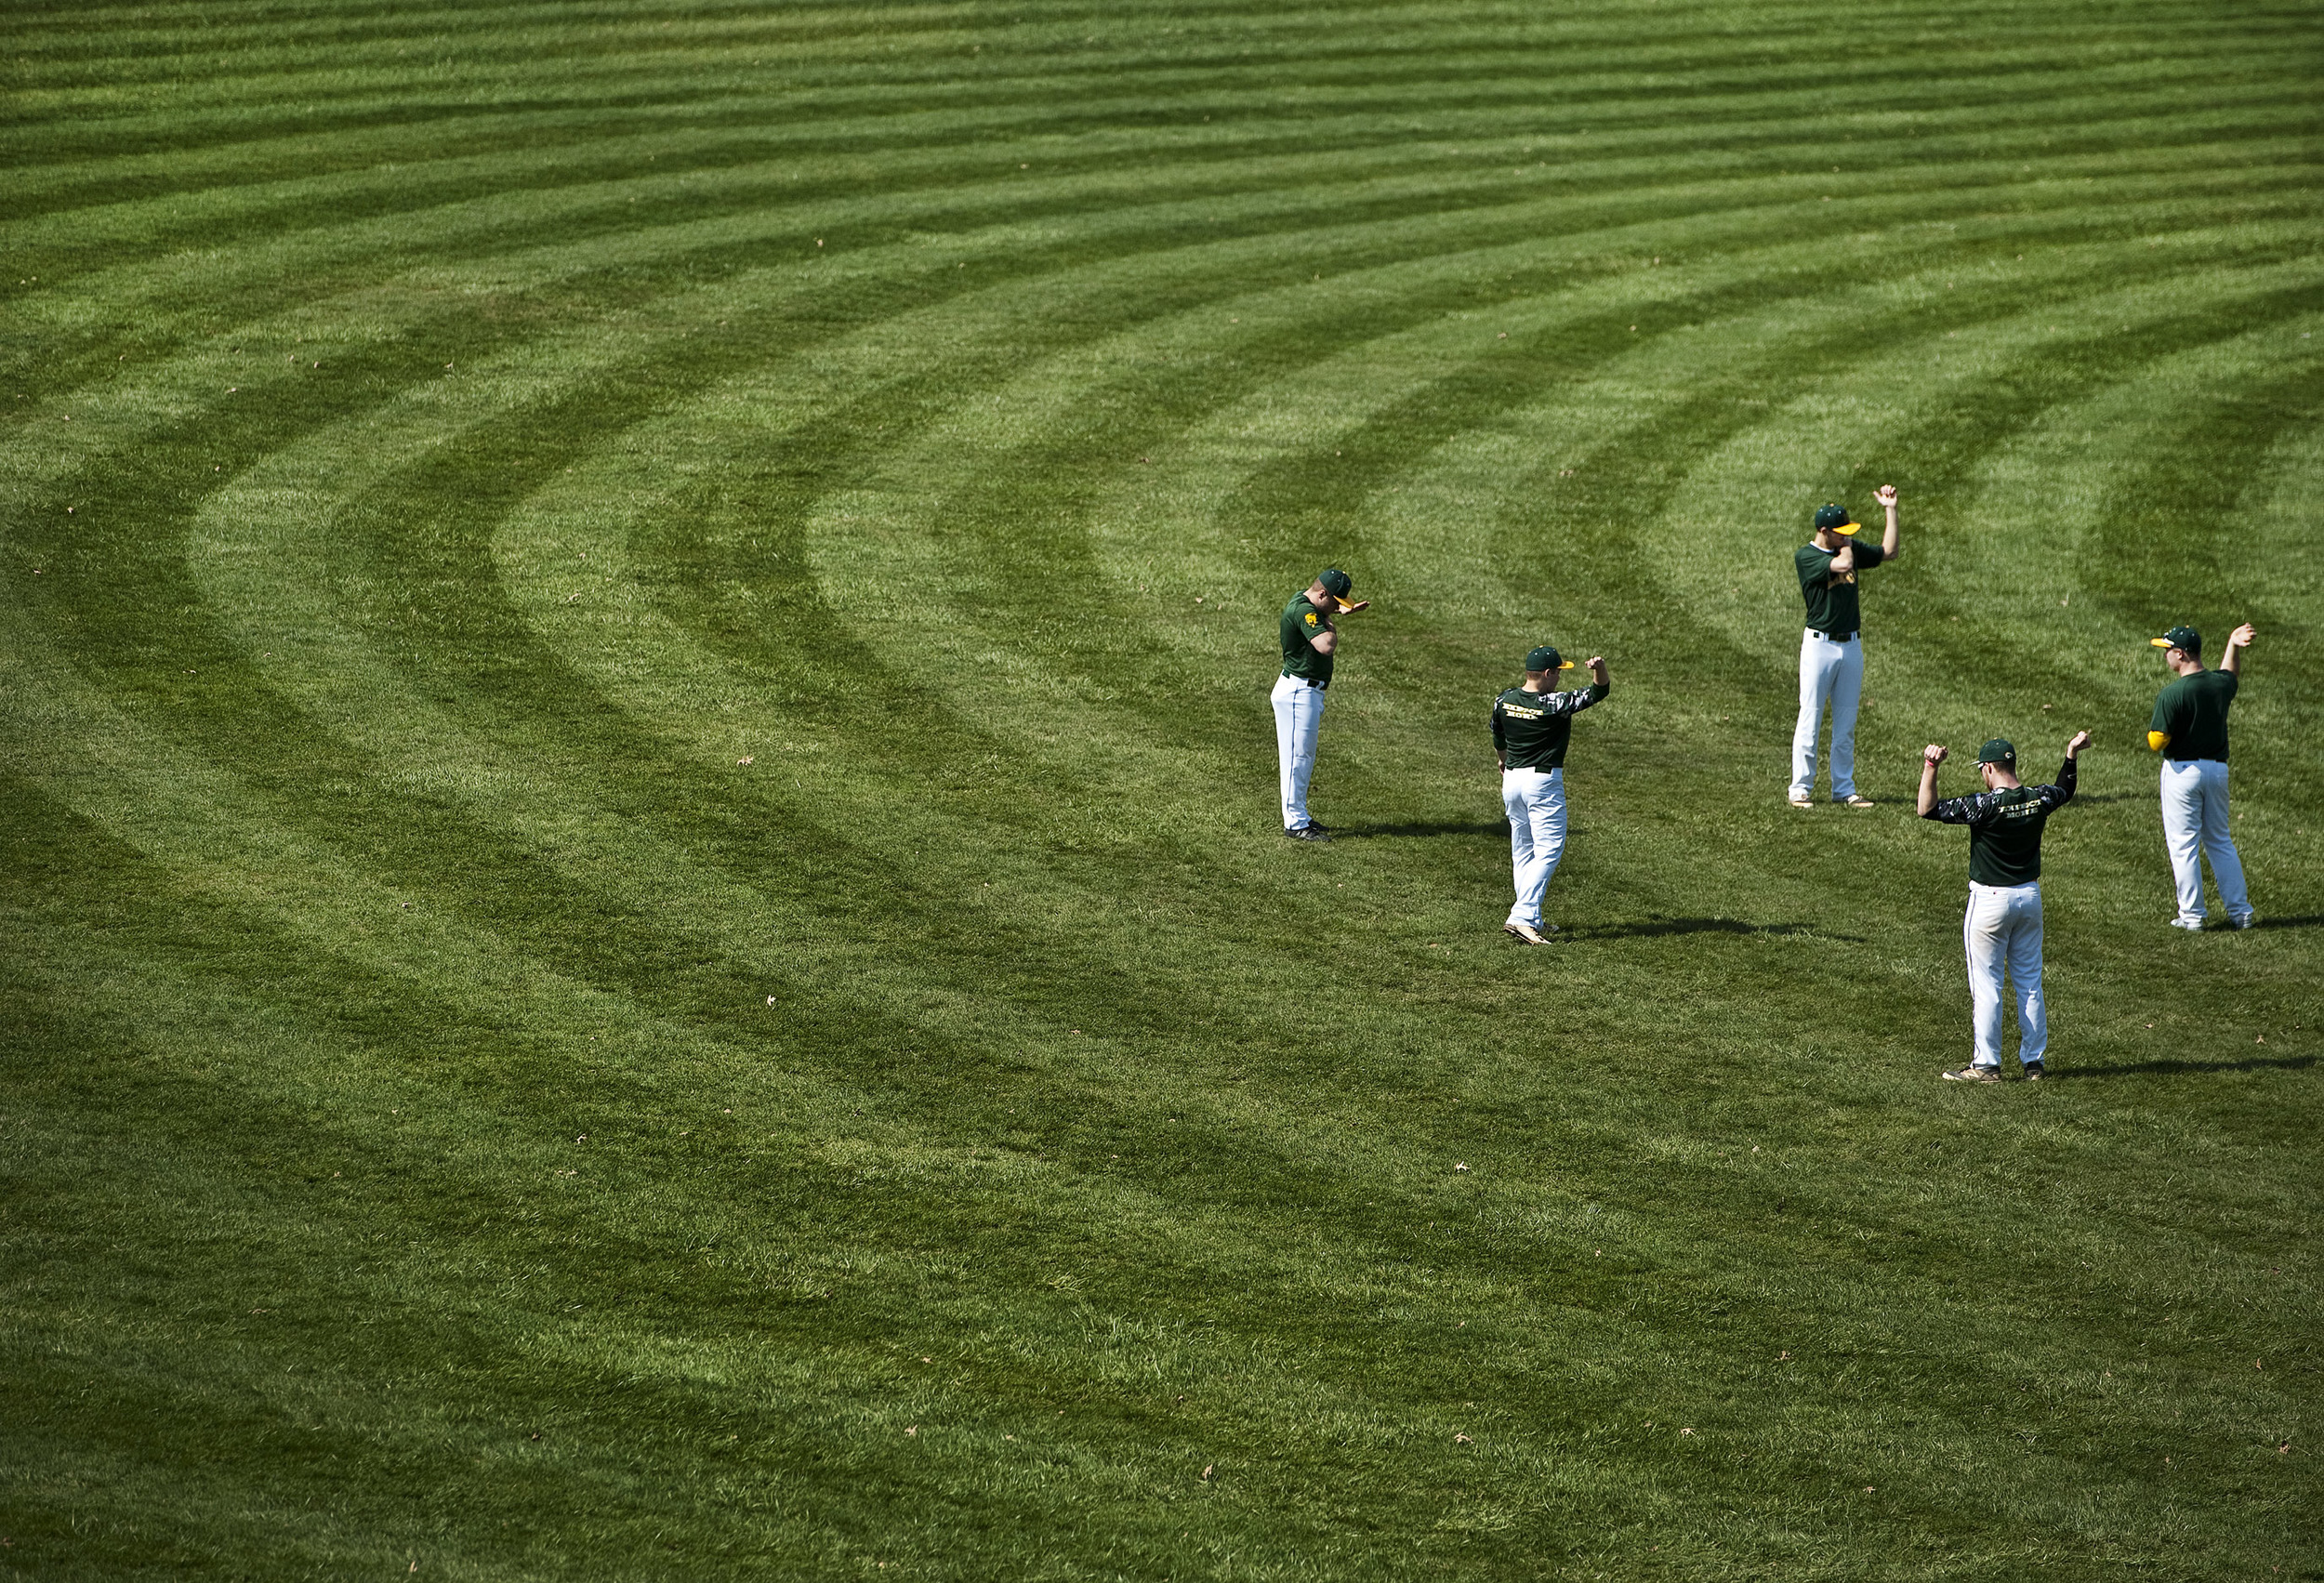 Members of Penn-Trafford's baseball team warm up their arms before practice on Wednesday, March 23, 2016 at the high school field in Harrison City. The first play date of WPIAL baseball is March 24, and section competition starts April 4.